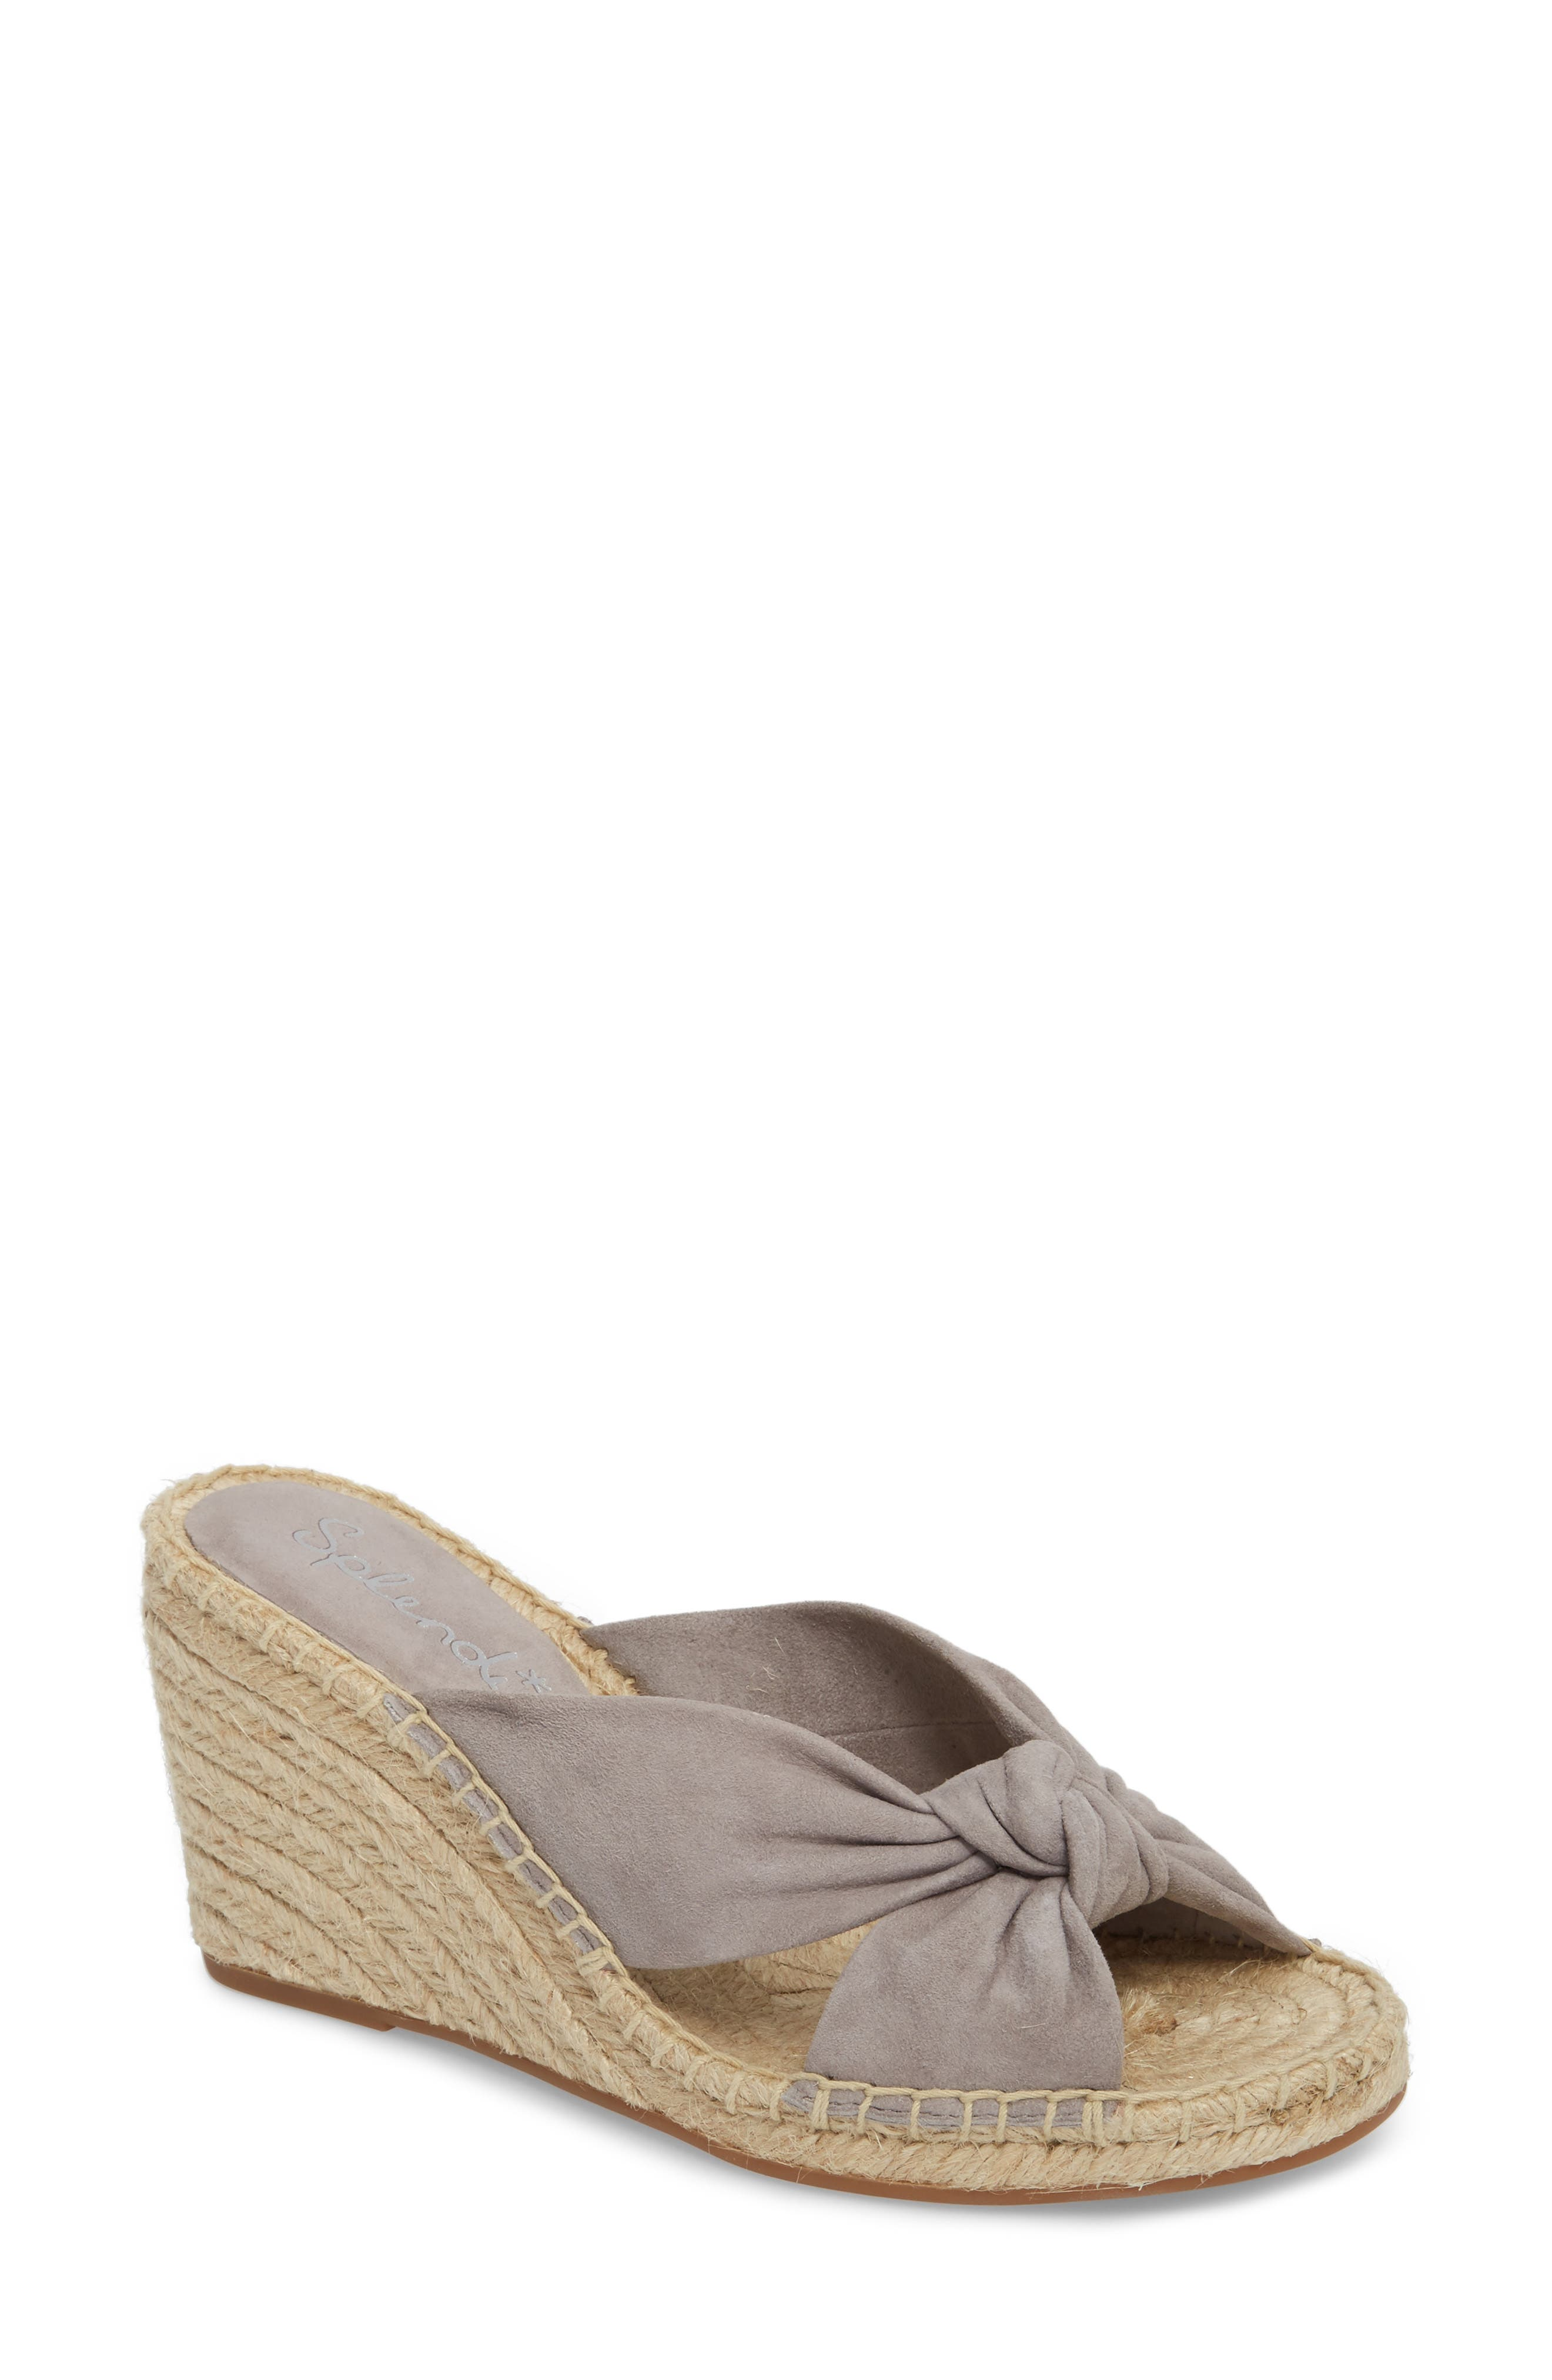 Bautista Knotted Wedge Sandal,                             Main thumbnail 1, color,                             Grey Suede